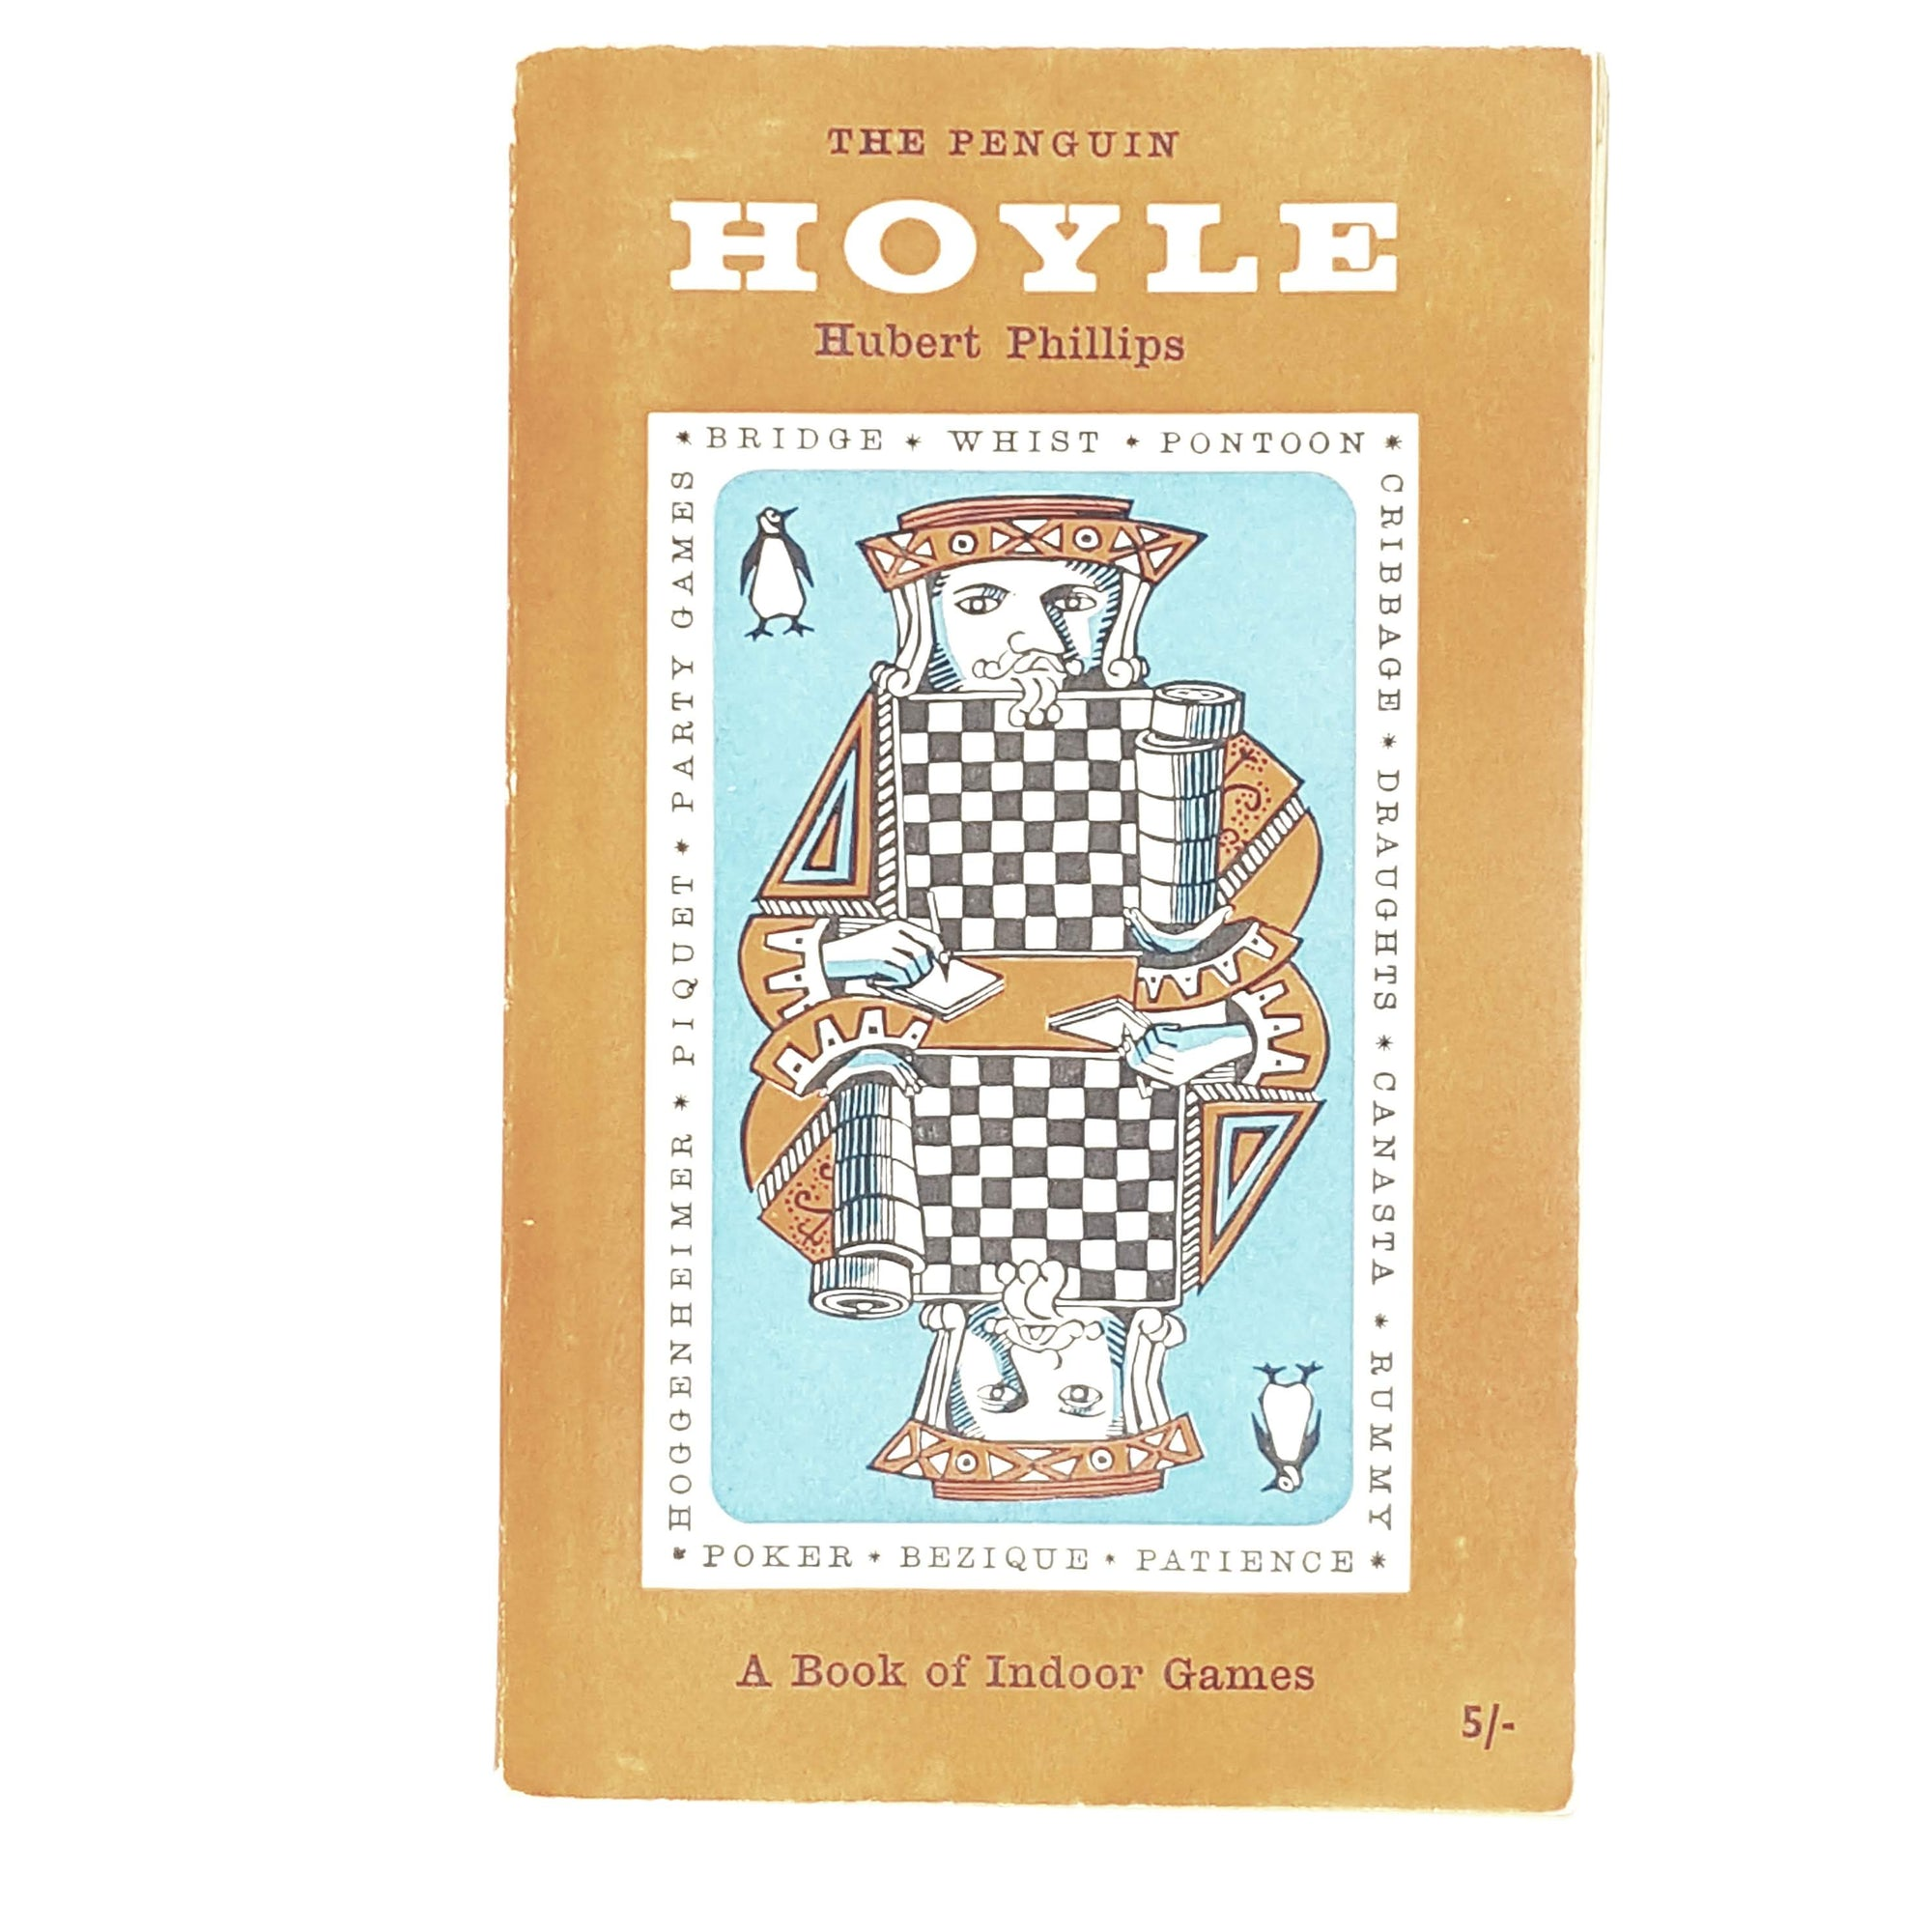 Vintage Penguin Hoyle Book of Indoor Games 1958